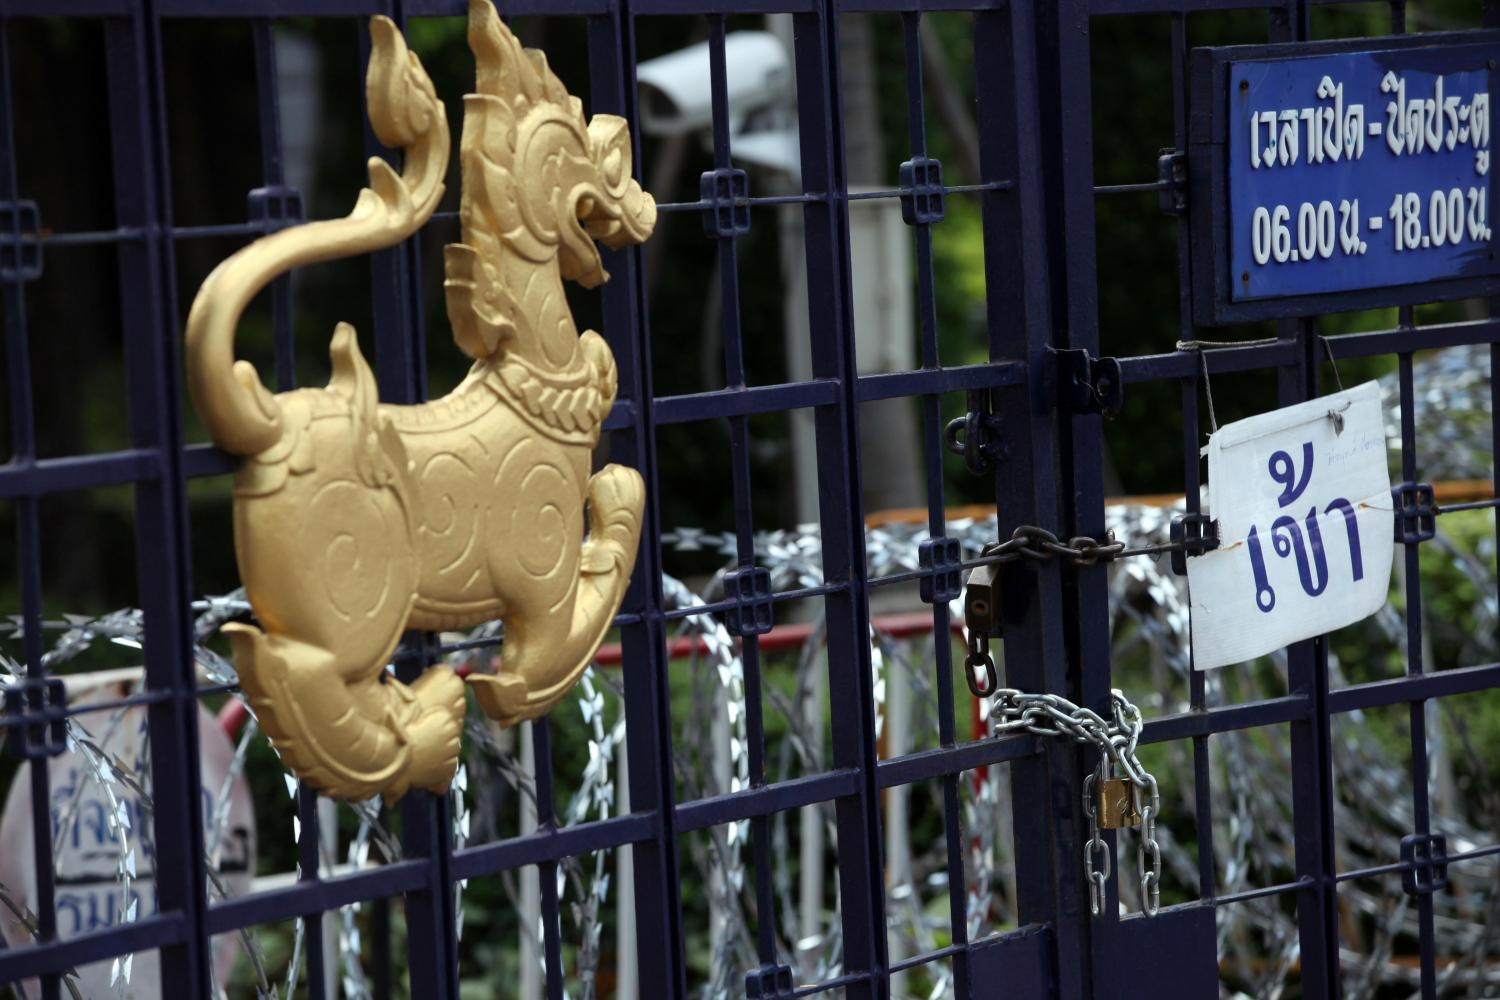 The lion-shaped emblem of the Interior Ministry. Rigid controls of budget spending by the central government make it impossible for local administrative bodies to respond to the needs of people under their jurisdiction.(Bangkok Post photo)